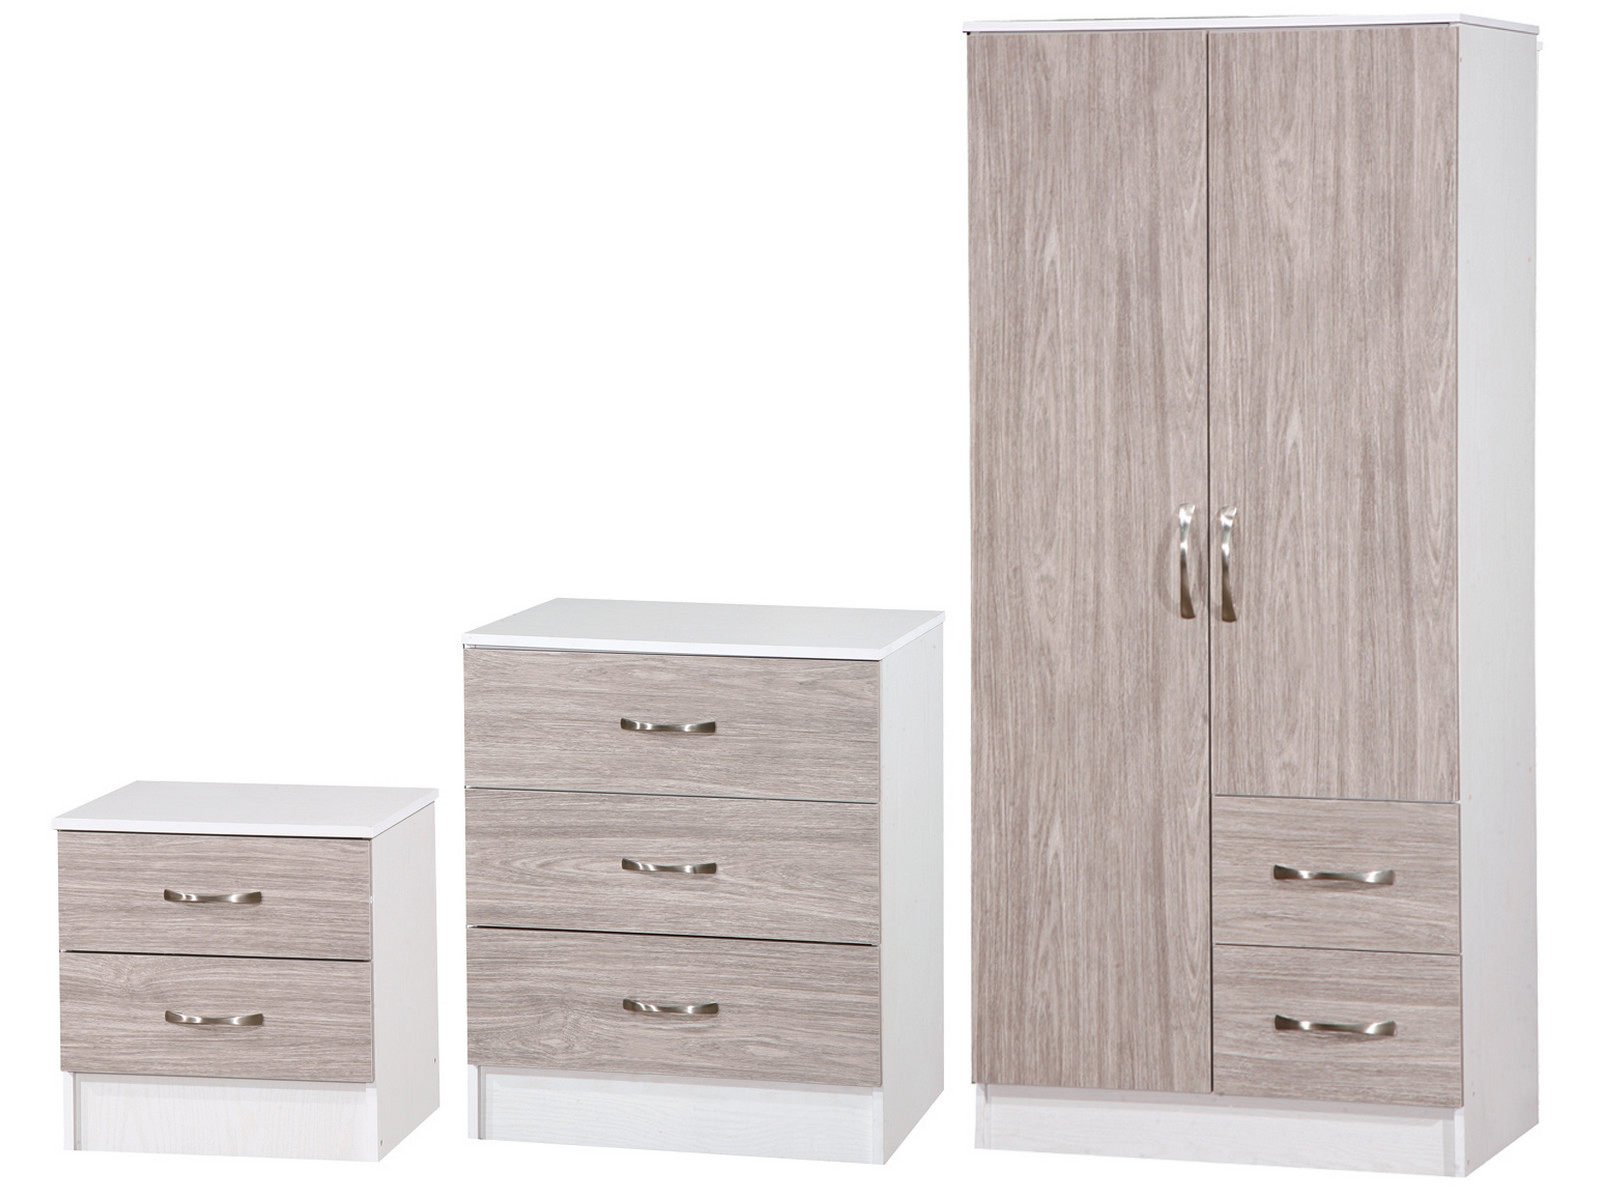 Grey Oak Amp White 3 Piece High Gloss Bedroom Furniture Set